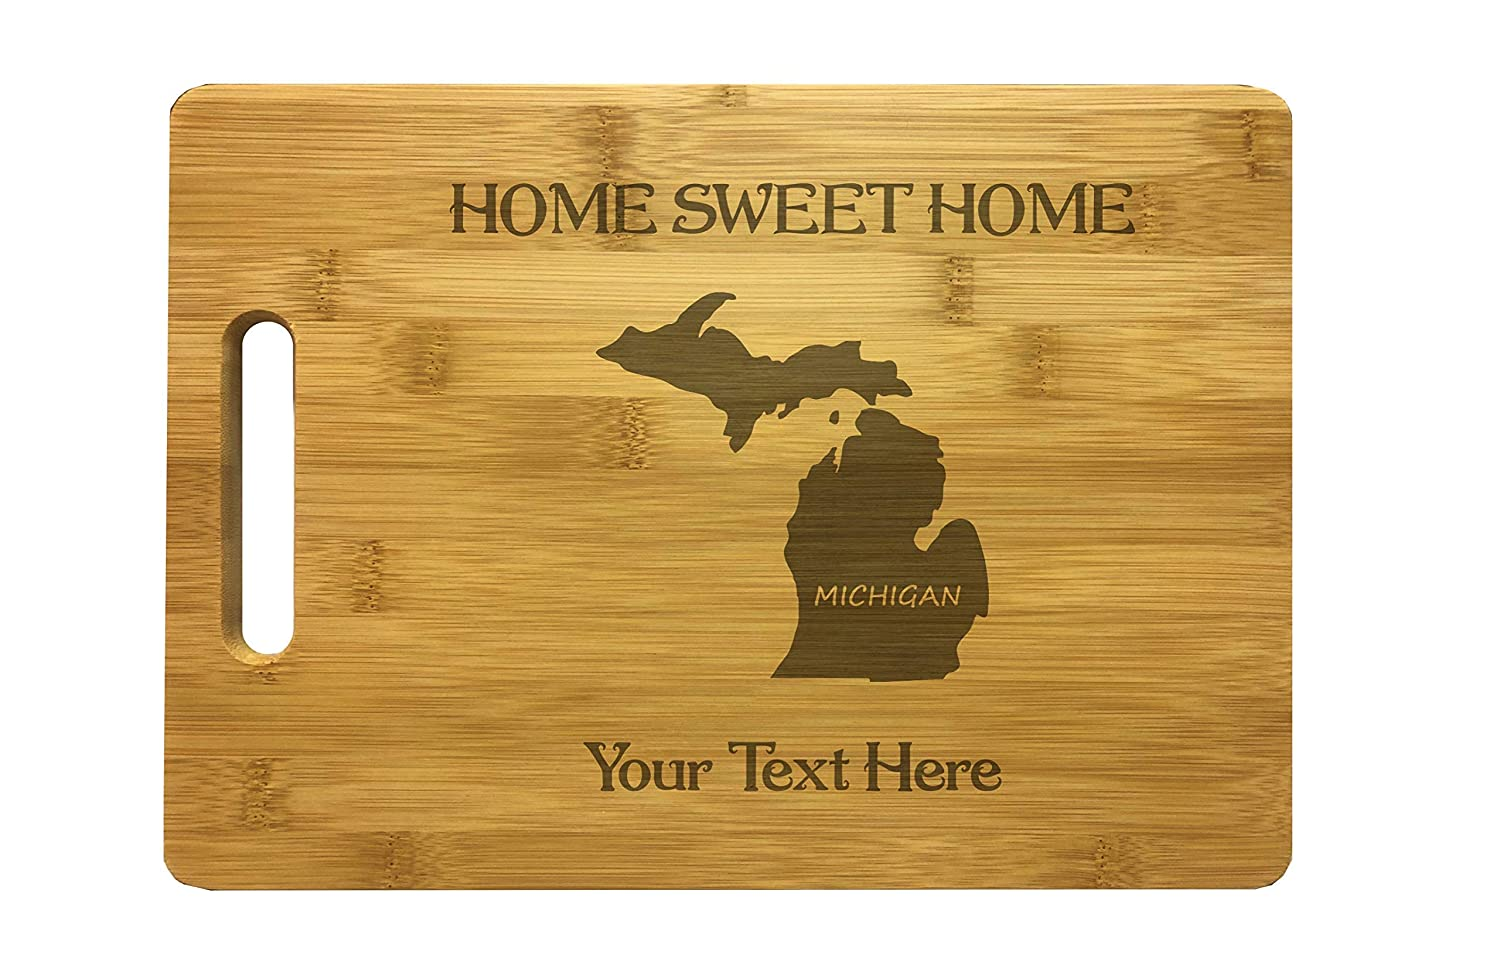 Michigan State Gift Cooking Chef Kitchen Gift Housewarming Gift Bamboo or Maple Personalized Michigan Home Sweet Home Engraved Cutting Board